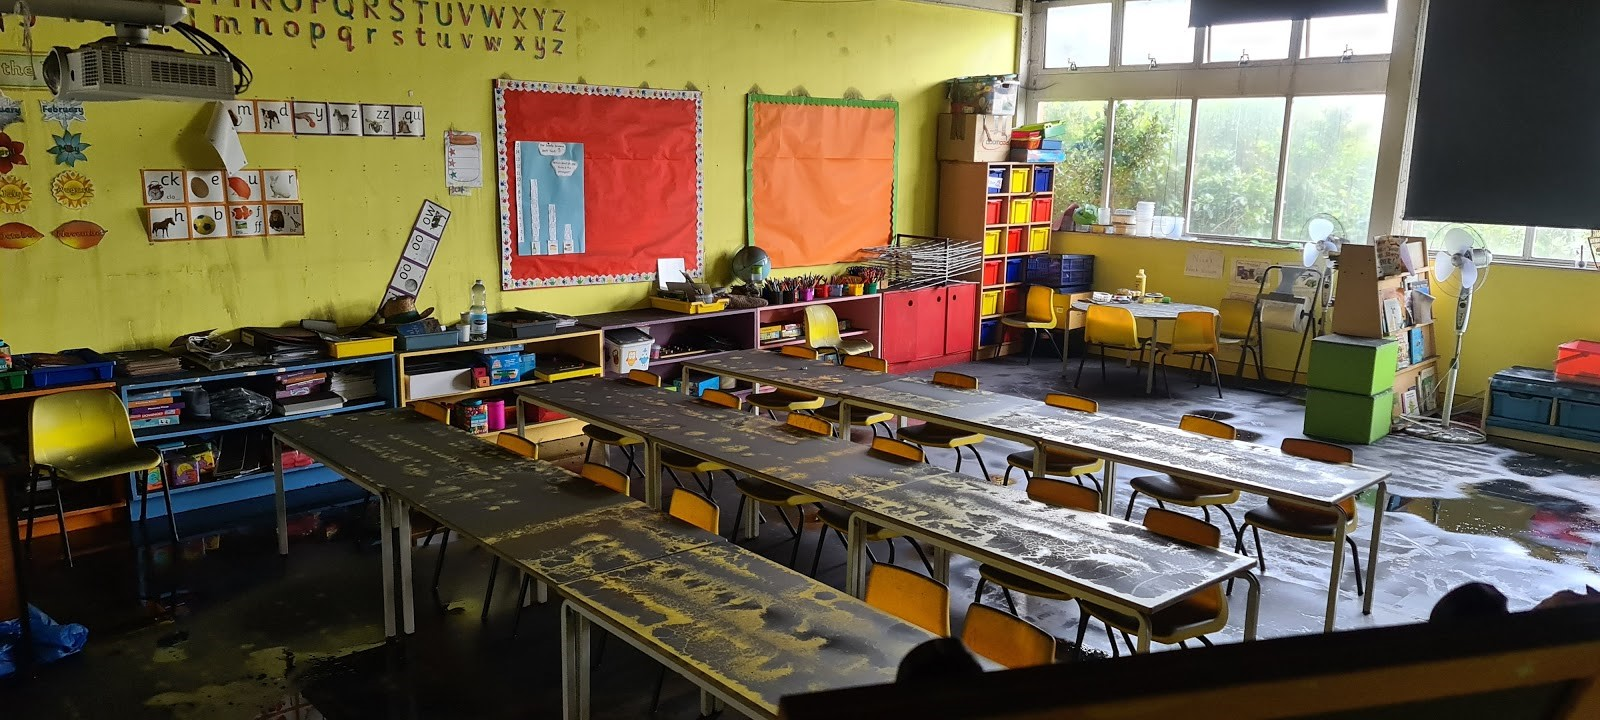 One-of-the-classrooms-with-water-and-smoke-damage